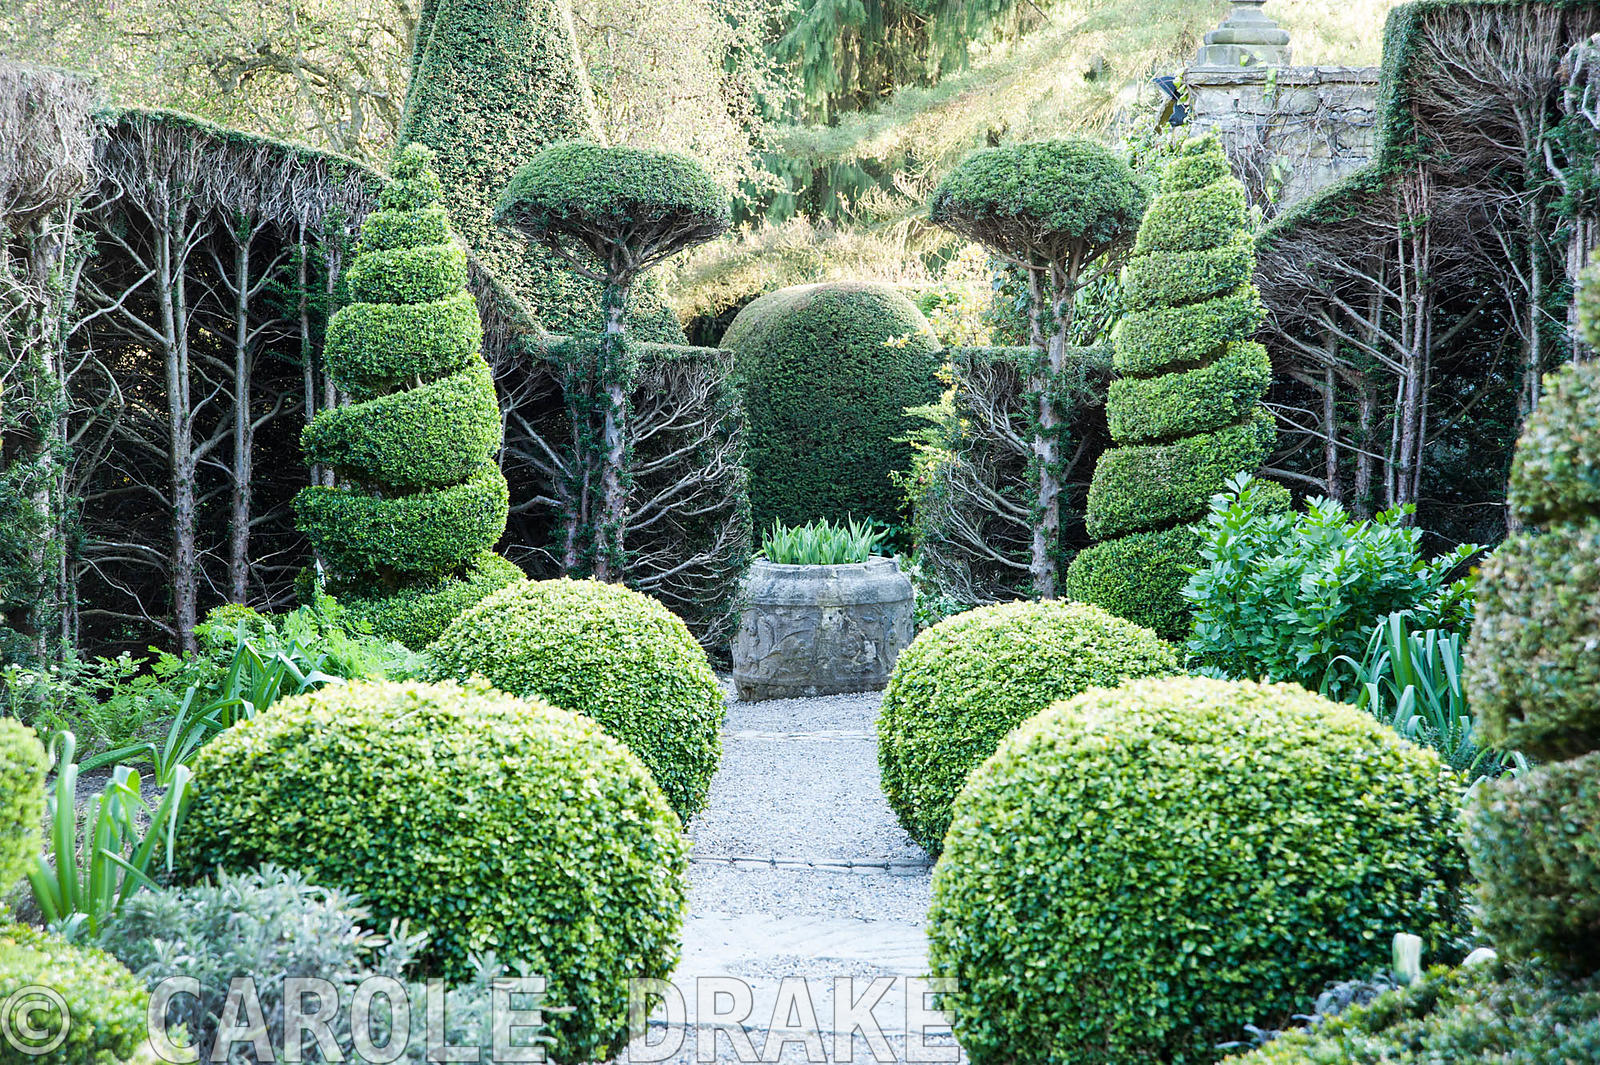 Carole Drake Clipped Box And Yew Topiary In The Herb Garden Where Overgrown Yew Hedges Are Resprouting After Being Cut Back The Previous